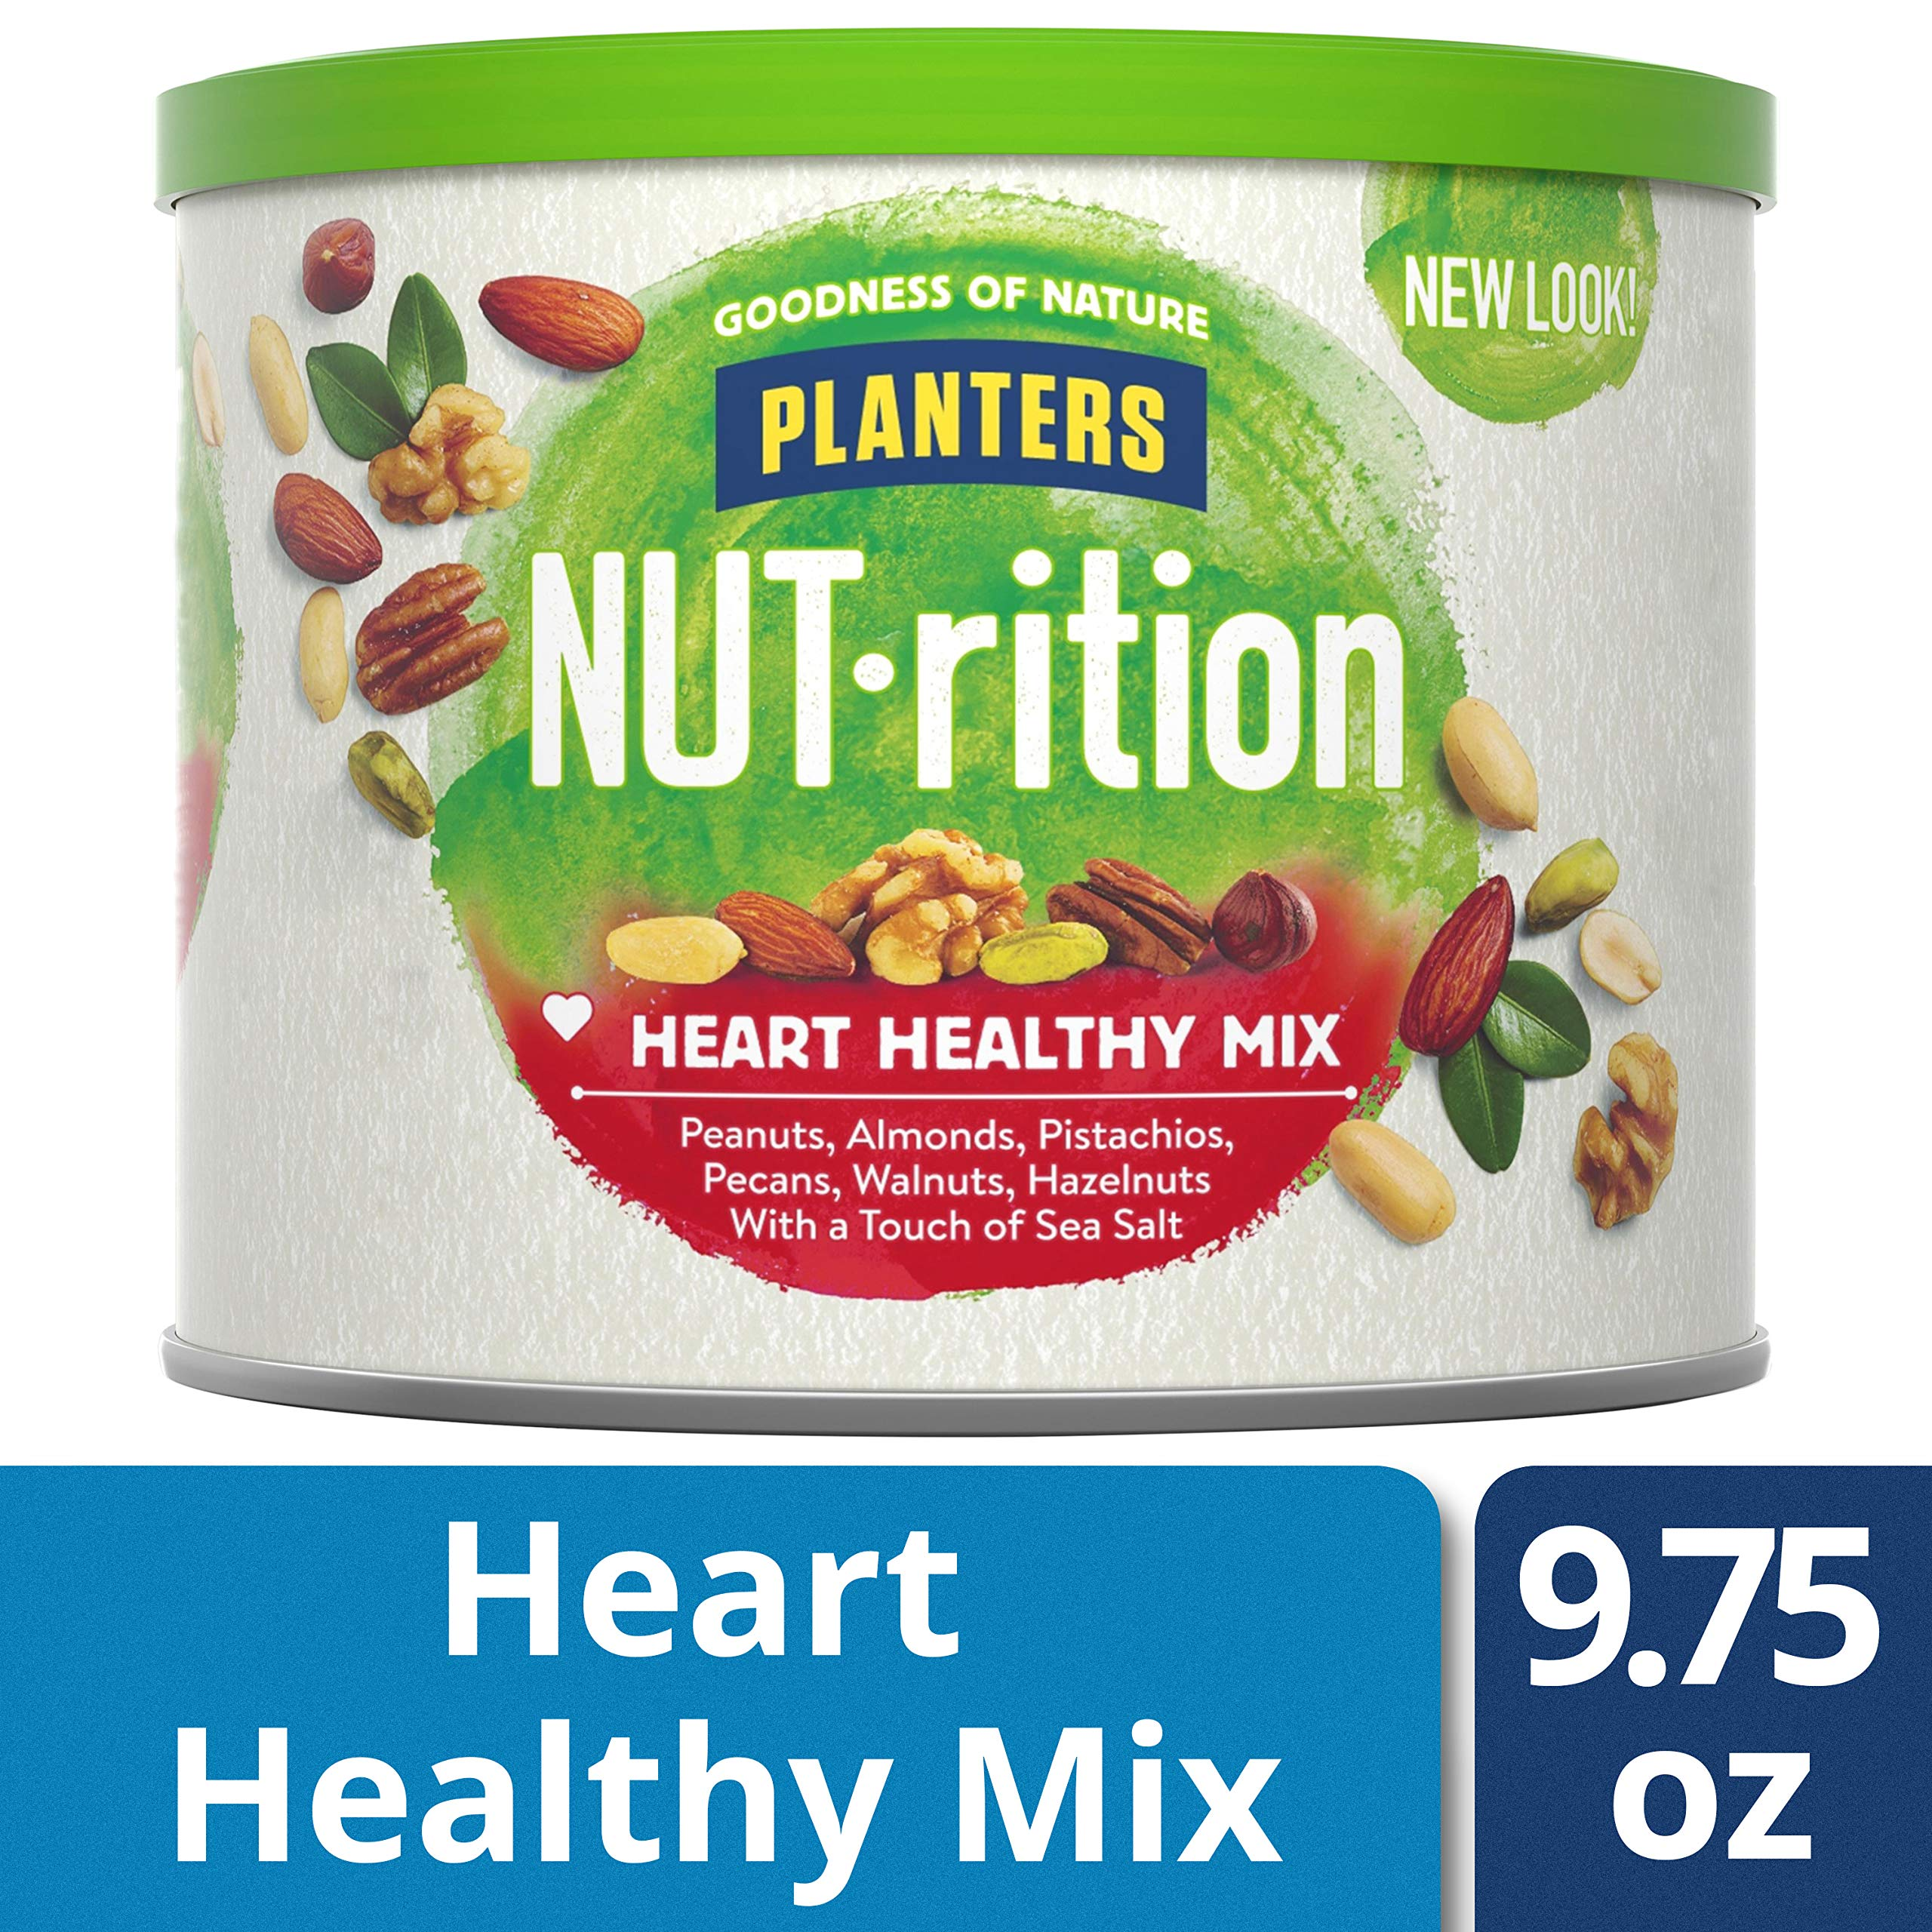 NUTrition Heart Healthy Snack Nut Mix (9.75oz, Pack of 3) by Planters (Image #5)